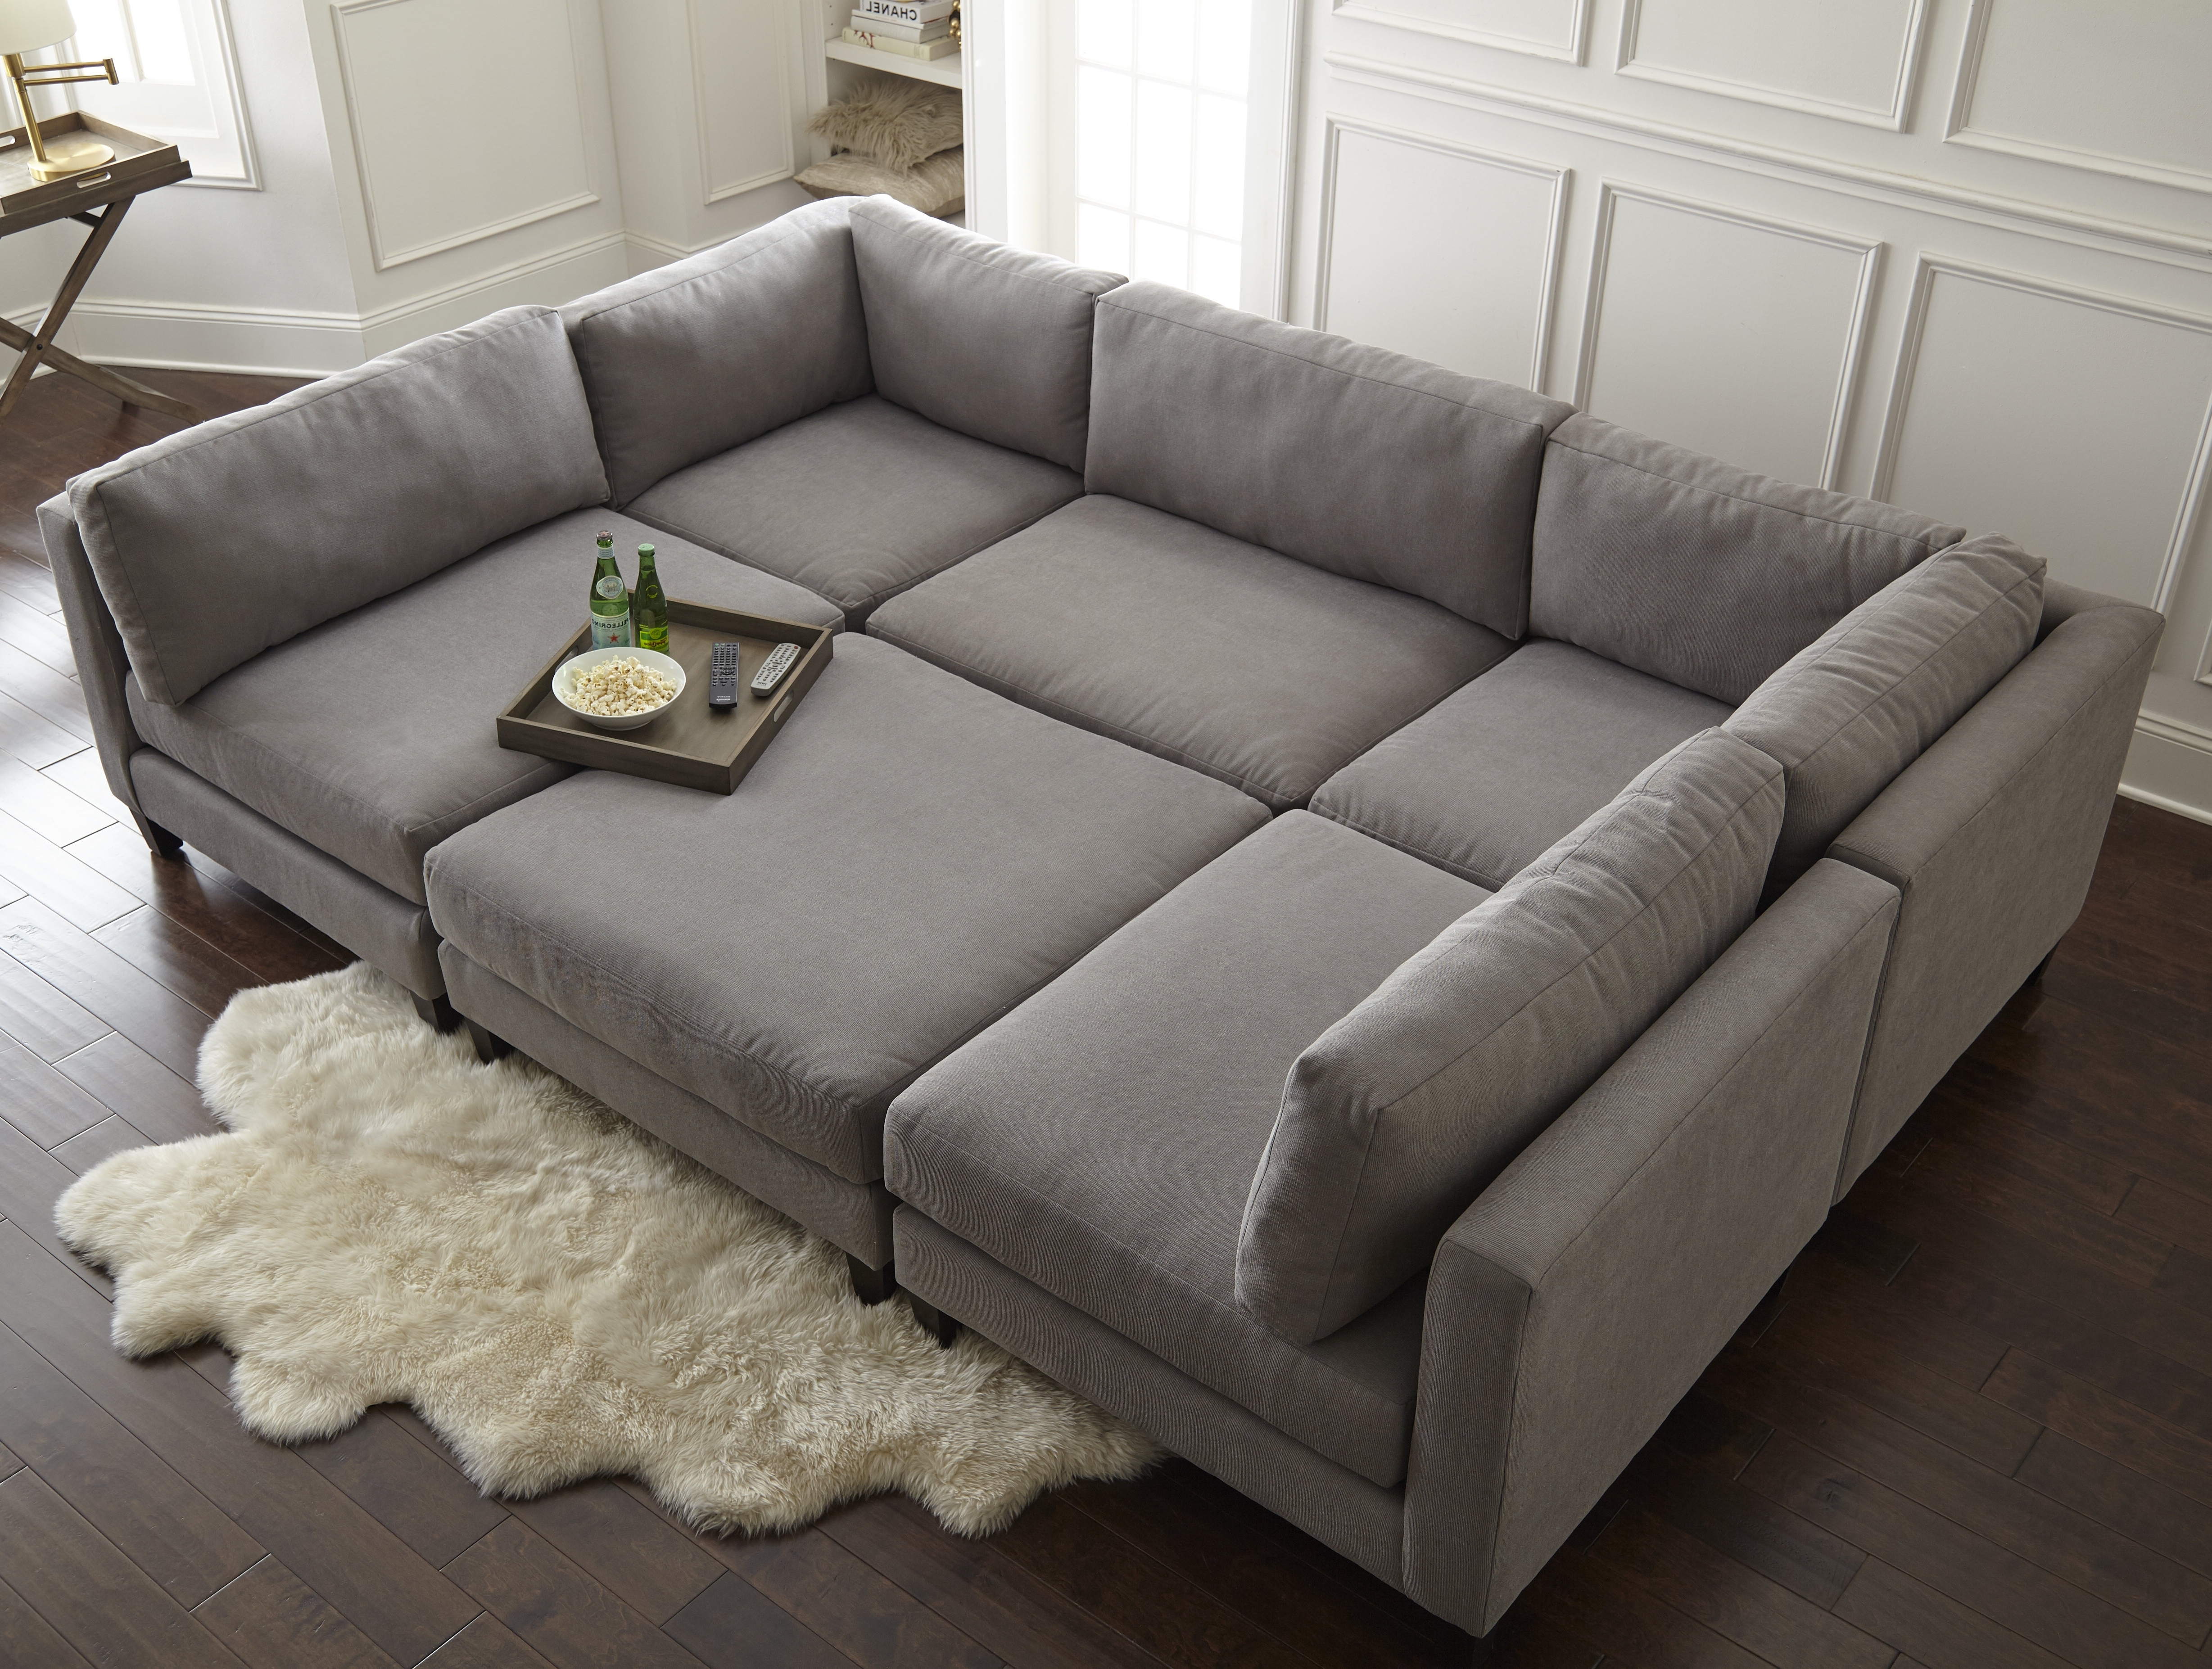 Down Filled Sectional Sofas Intended For 2019 Individual Sectional Pieces (Gallery 20 of 20)